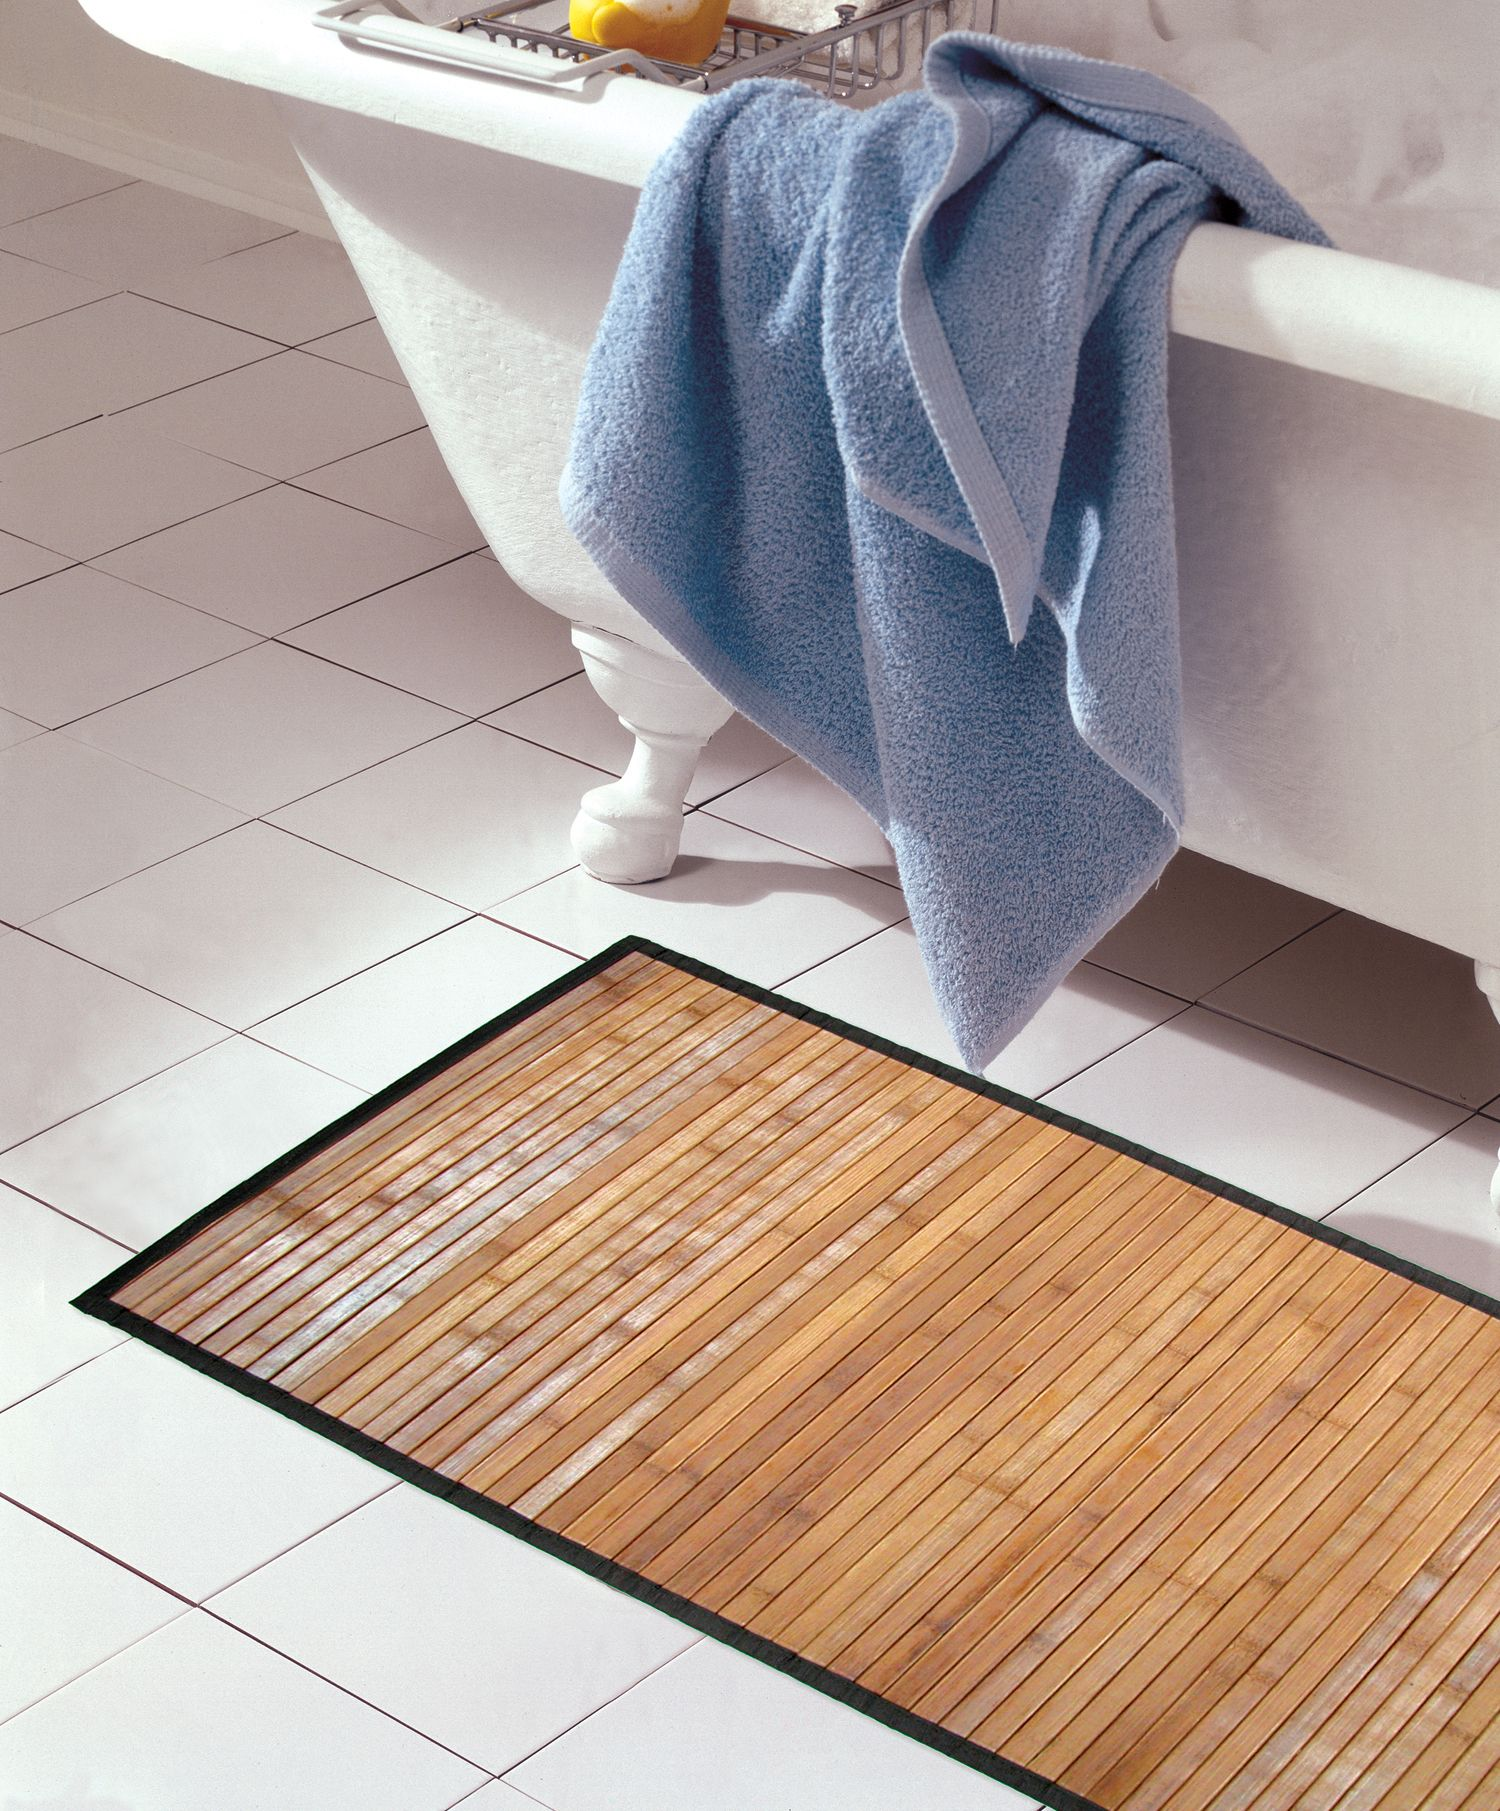 A Bamboo Step Out Mat Spa La La 14 99 Bath Mat Bath Bamboo